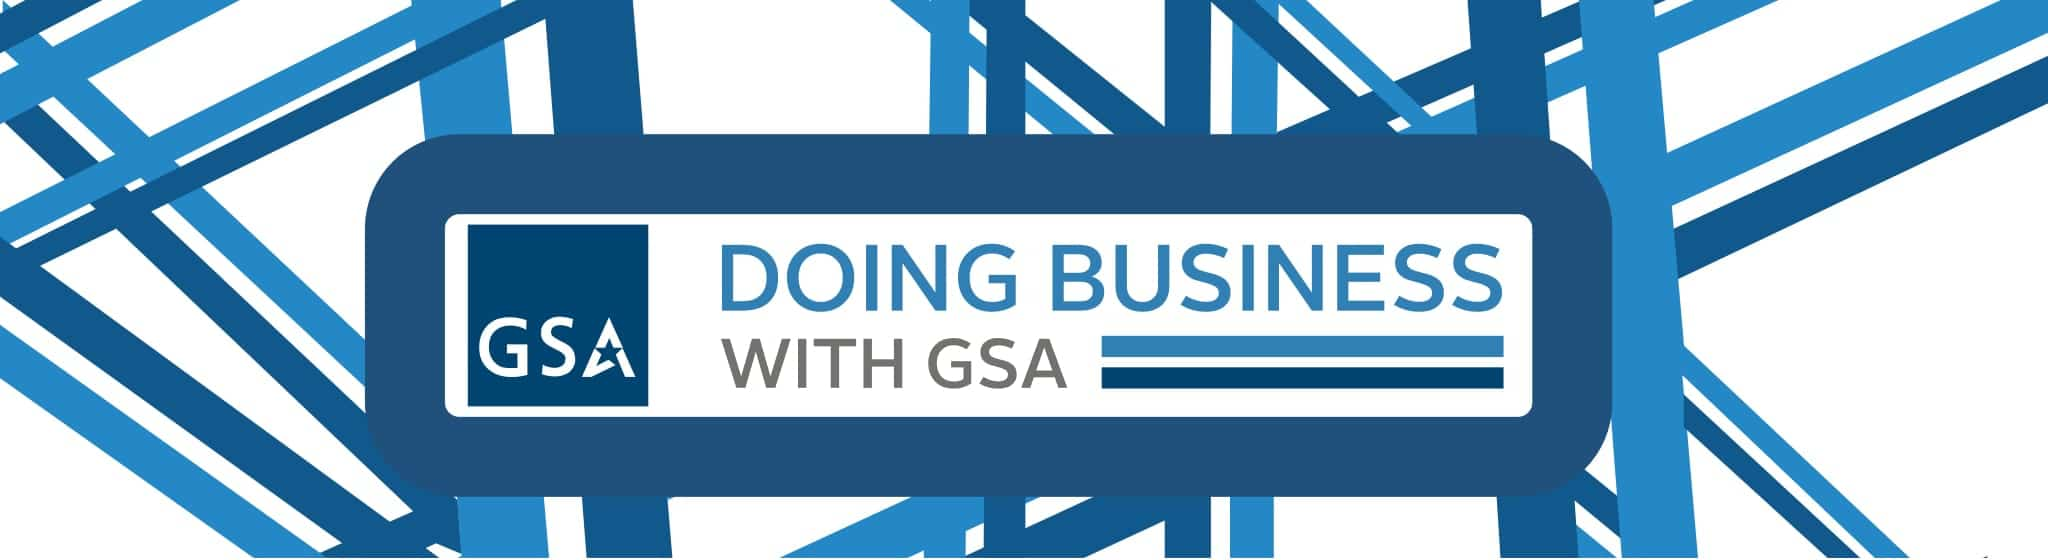 GSA OSBU BRAND COMMUNICATIONS